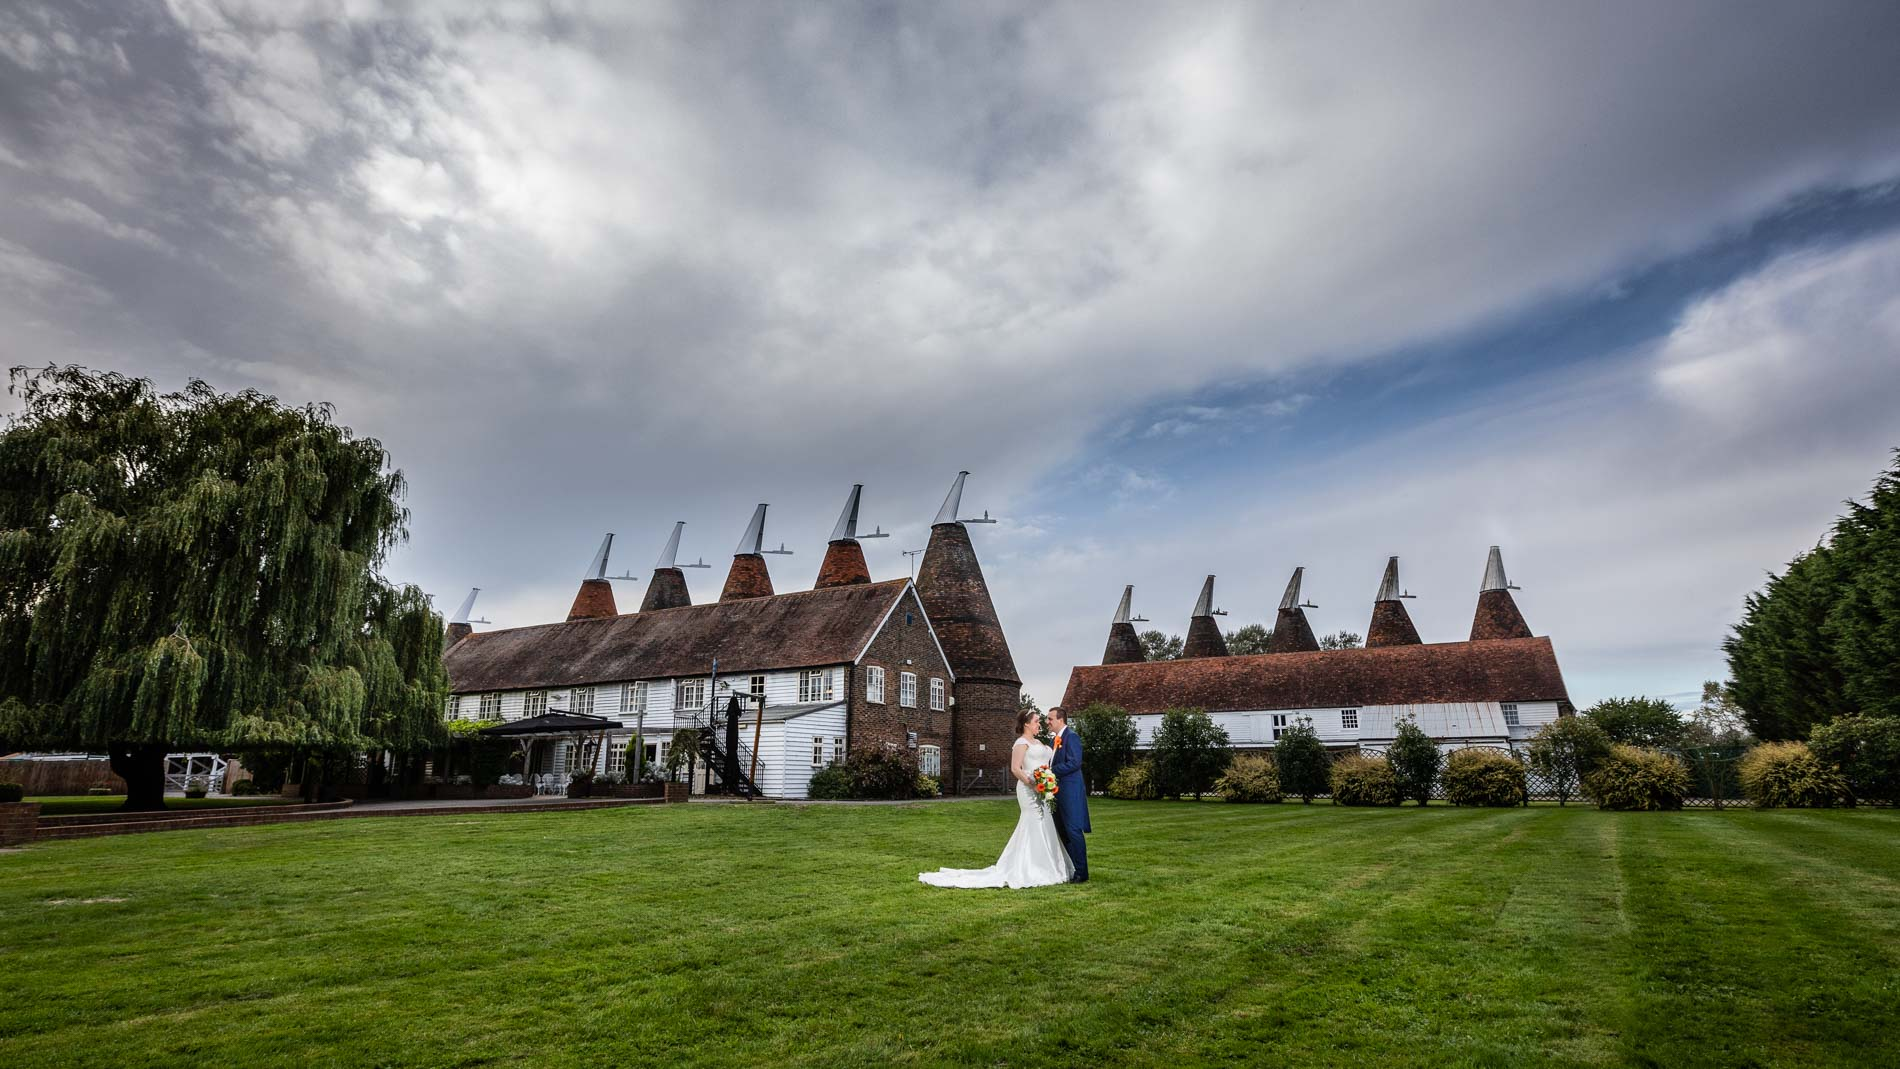 Hop Farm Wedding Venue in Kent